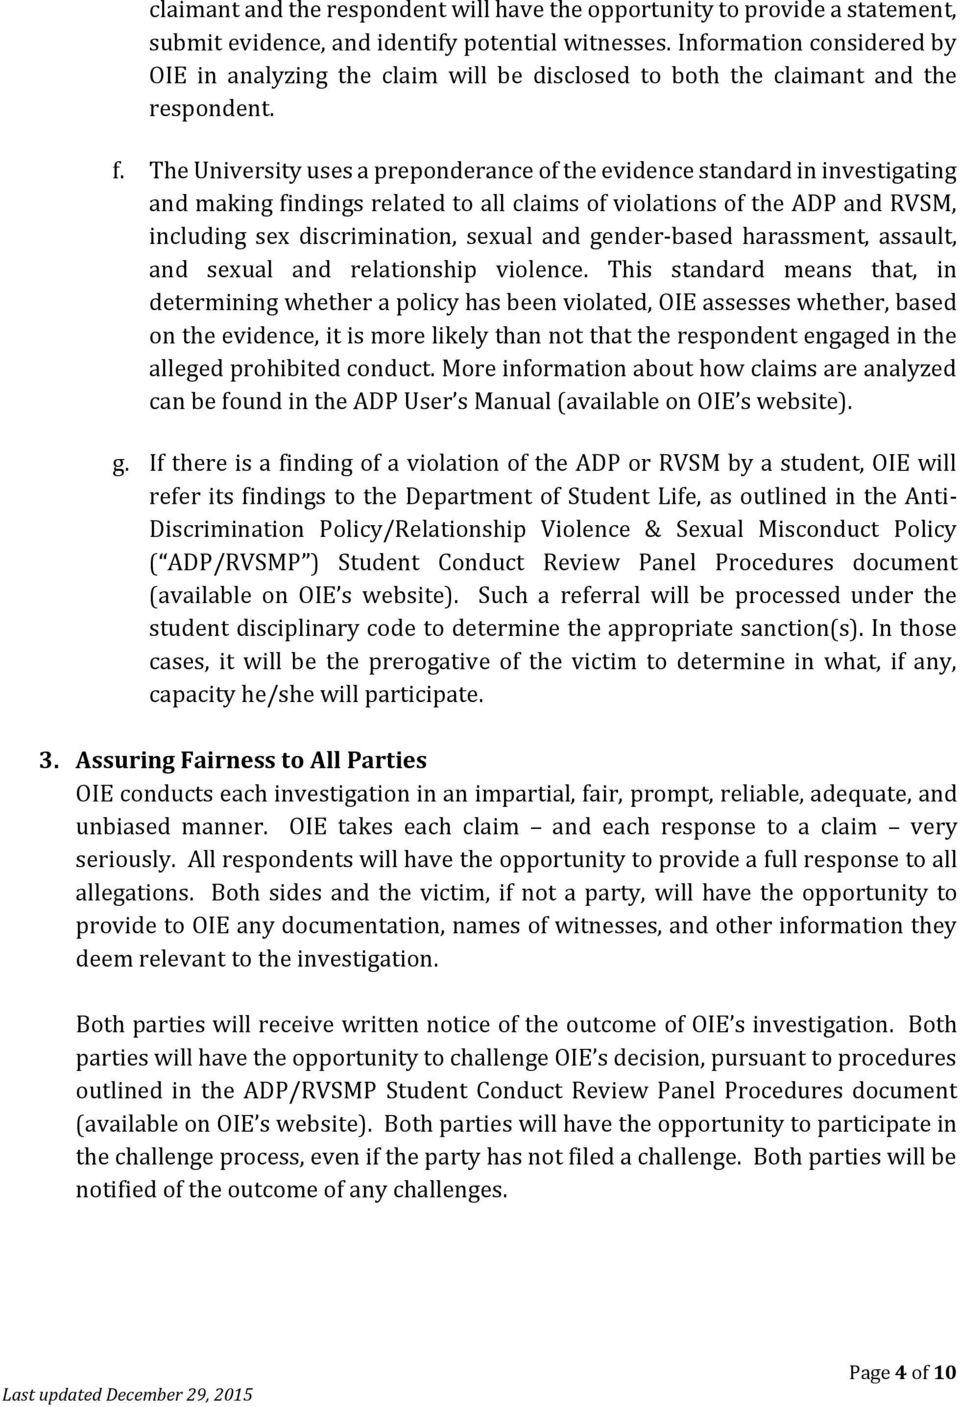 The University uses a preponderance of the evidence standard in investigating and making findings related to all claims of violations of the ADP and RVSM, including sex discrimination, sexual and